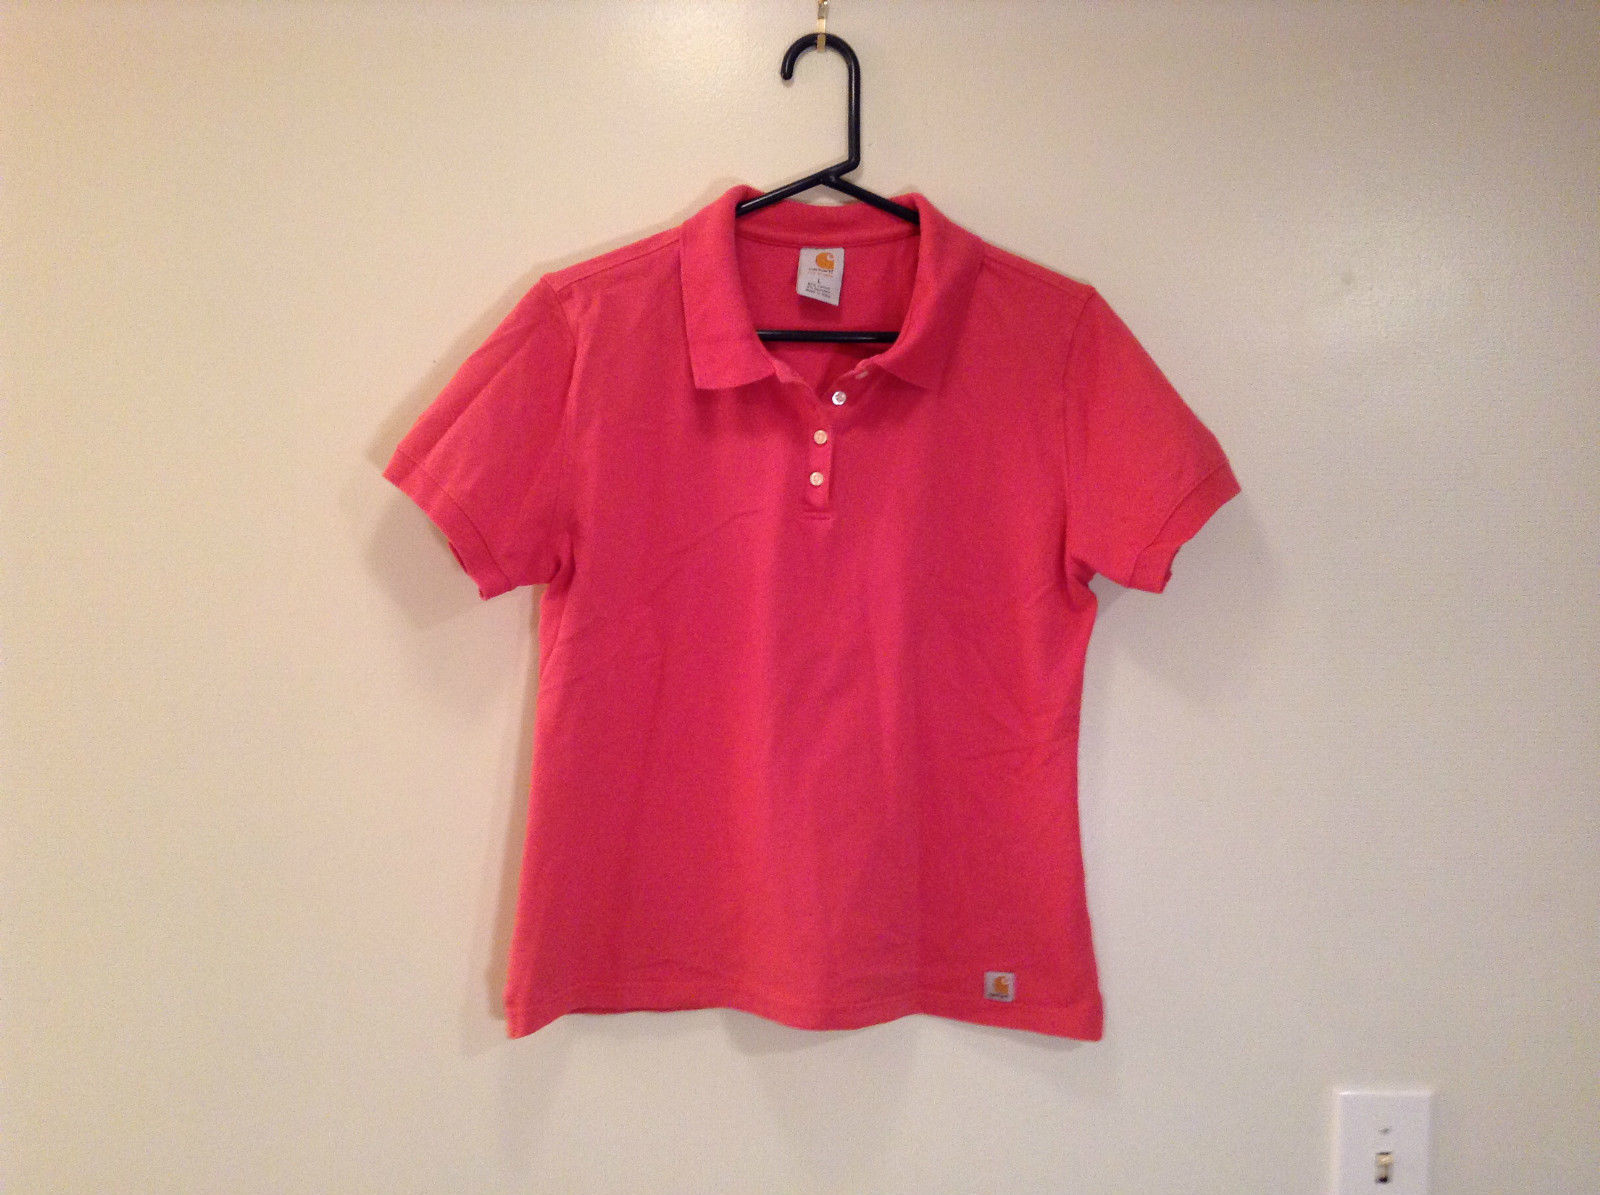 Carhartt Size Large Red Short Sleeve Cotton Blend Polo Shirt